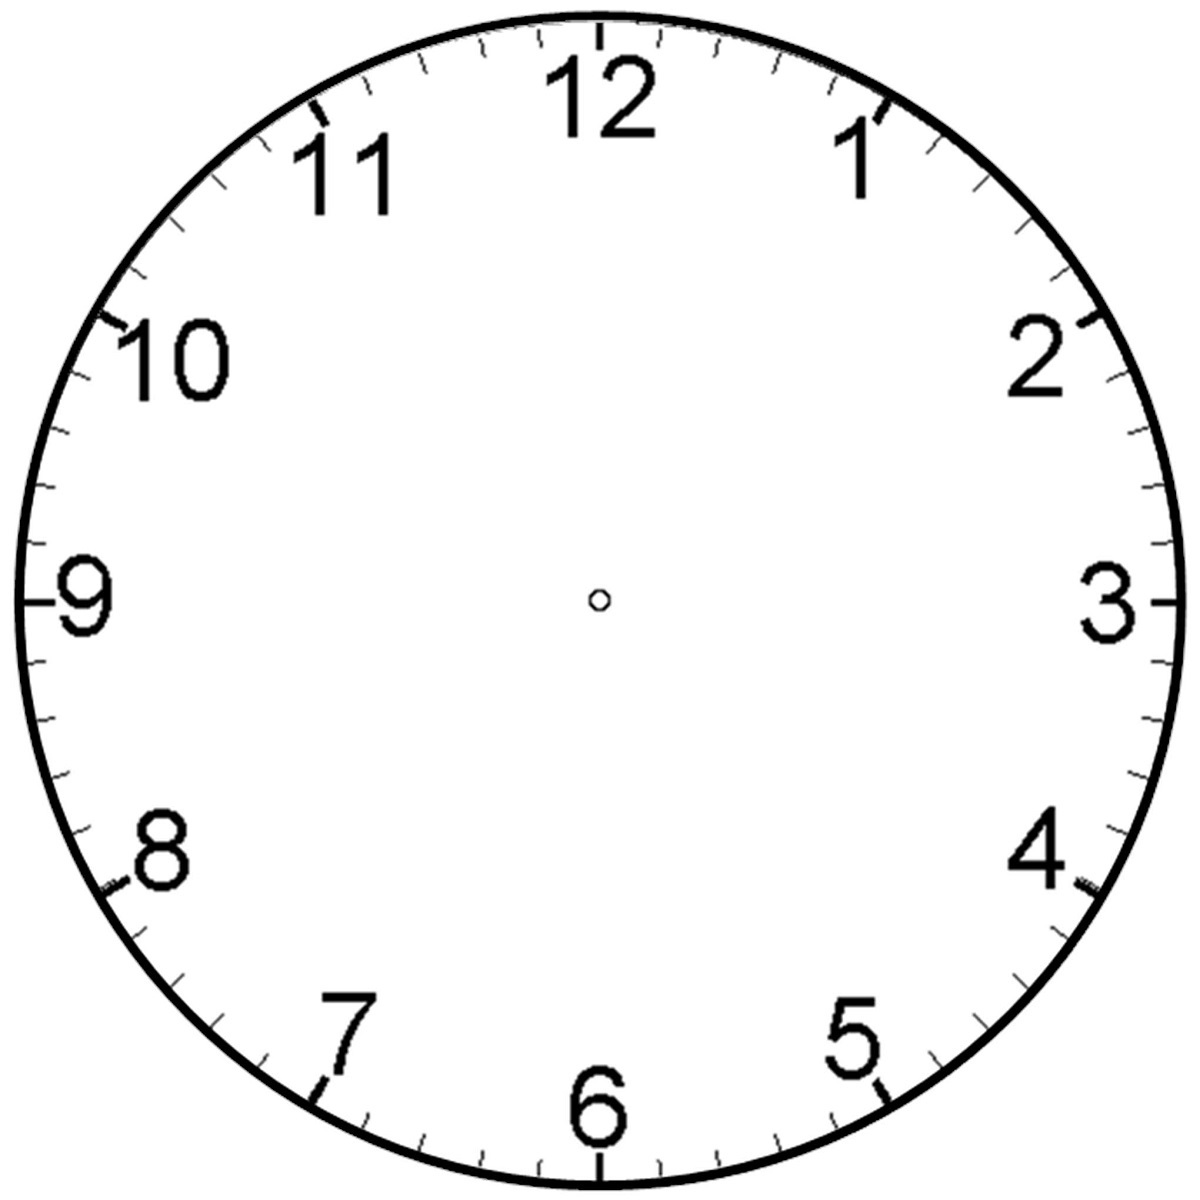 blank clock faces image